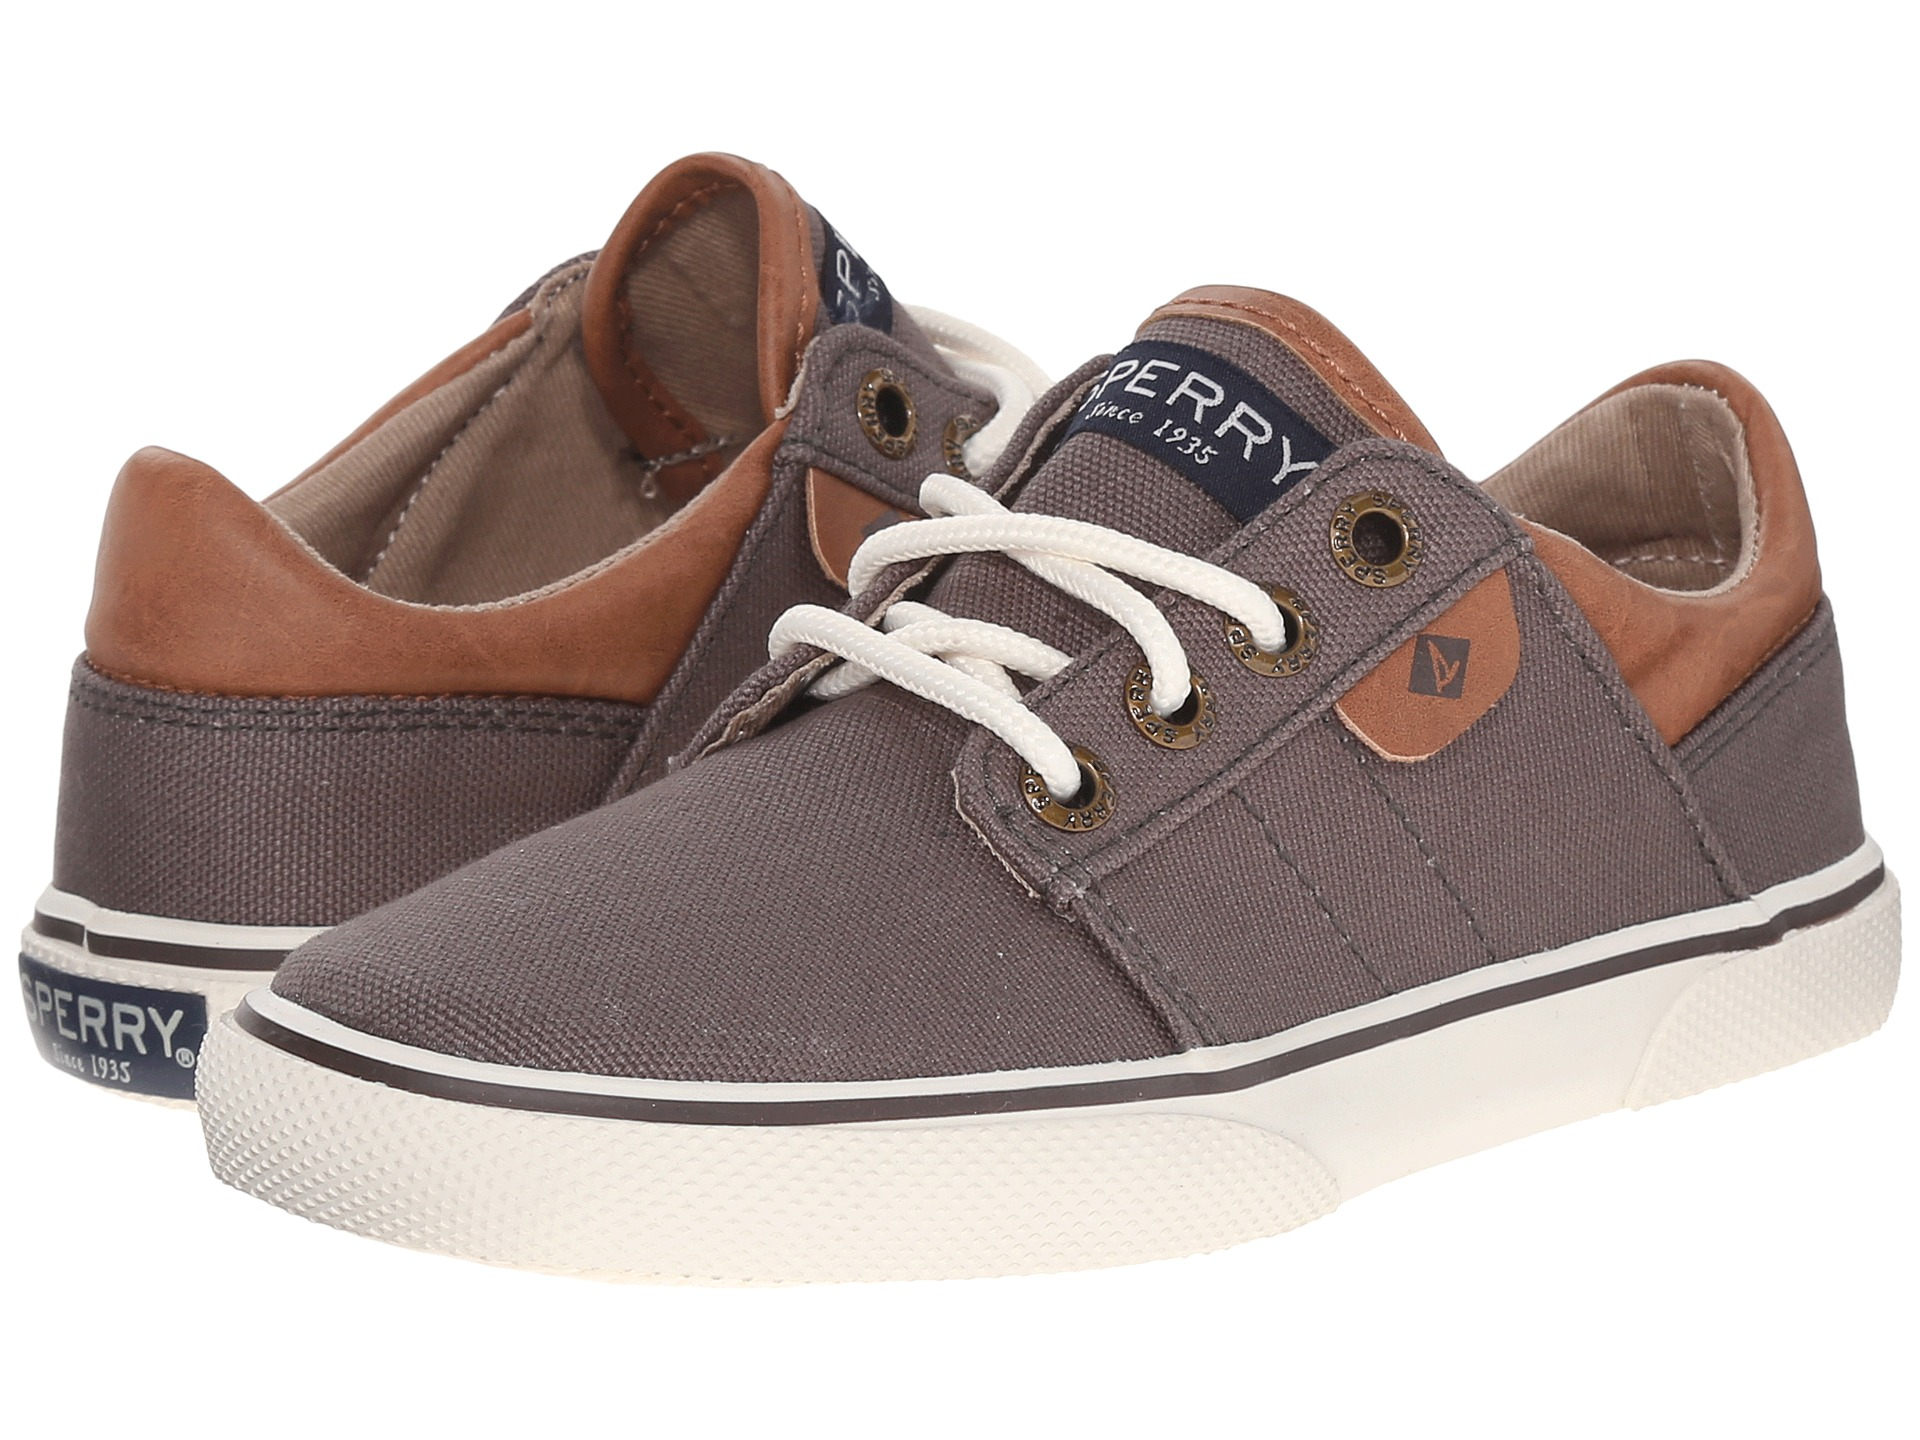 Sperry Top Sider Shoes For Girls